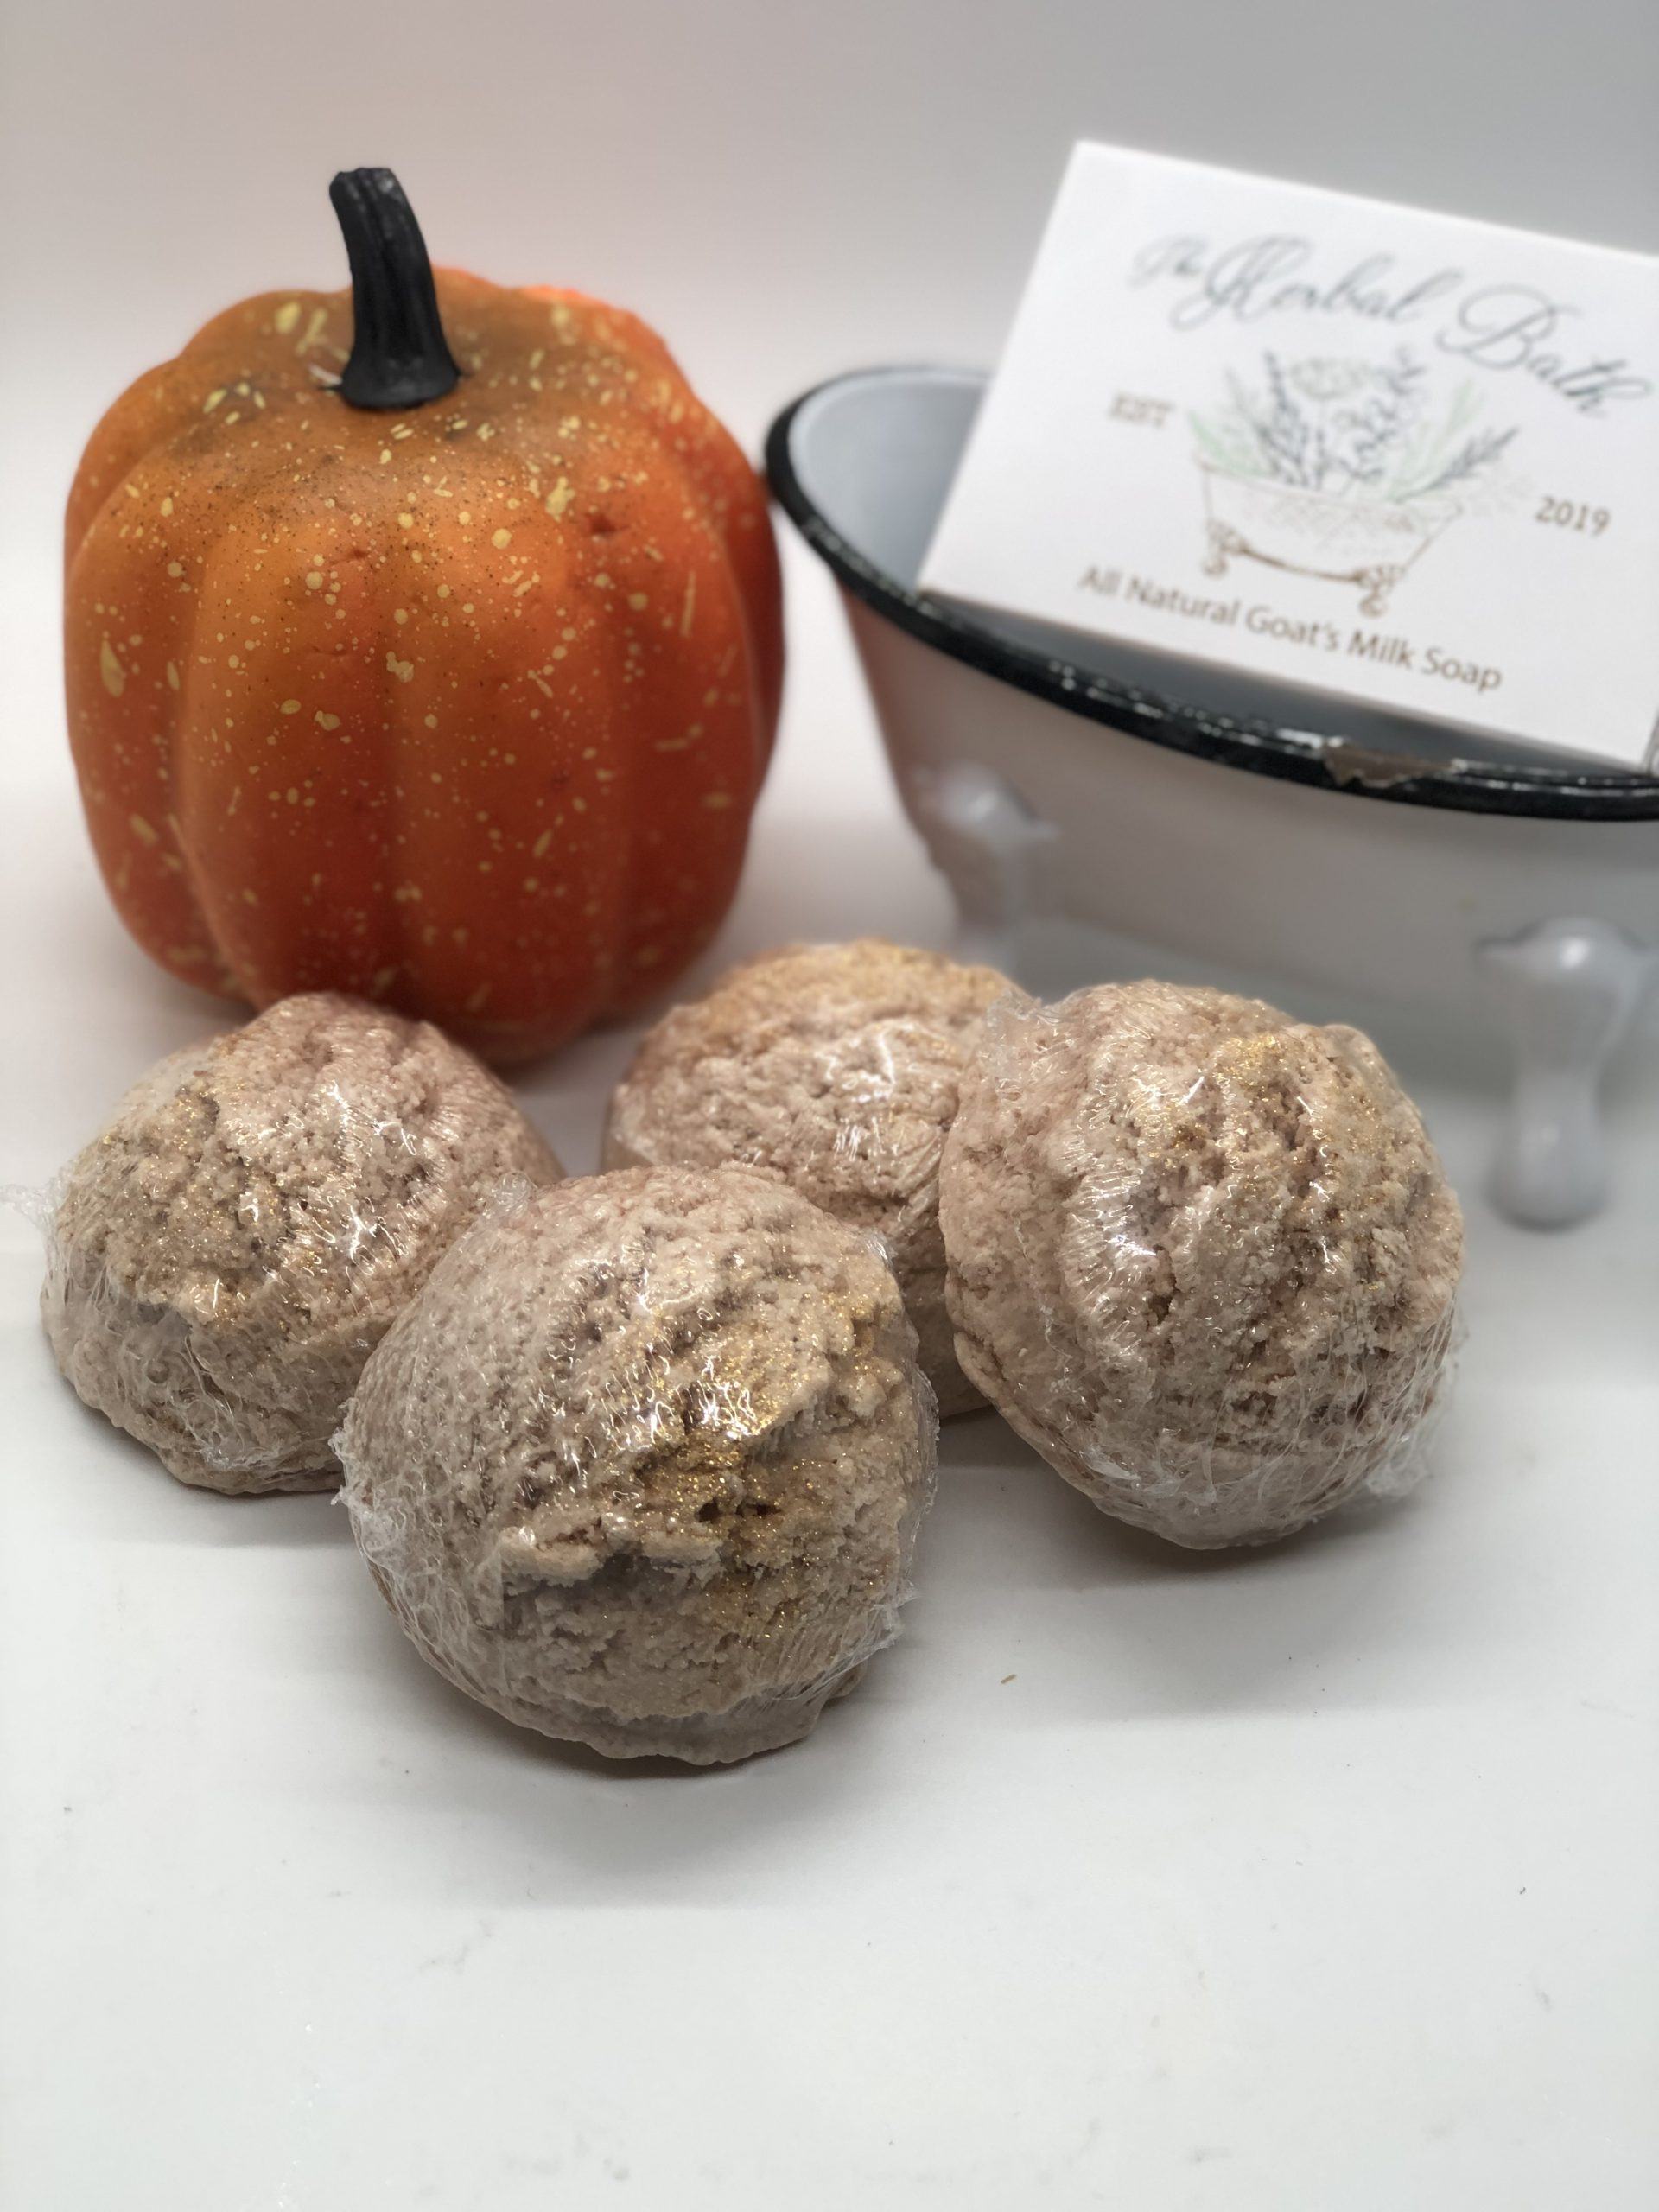 Luxurious Pumpkin Spice Bubble Bath Scoop